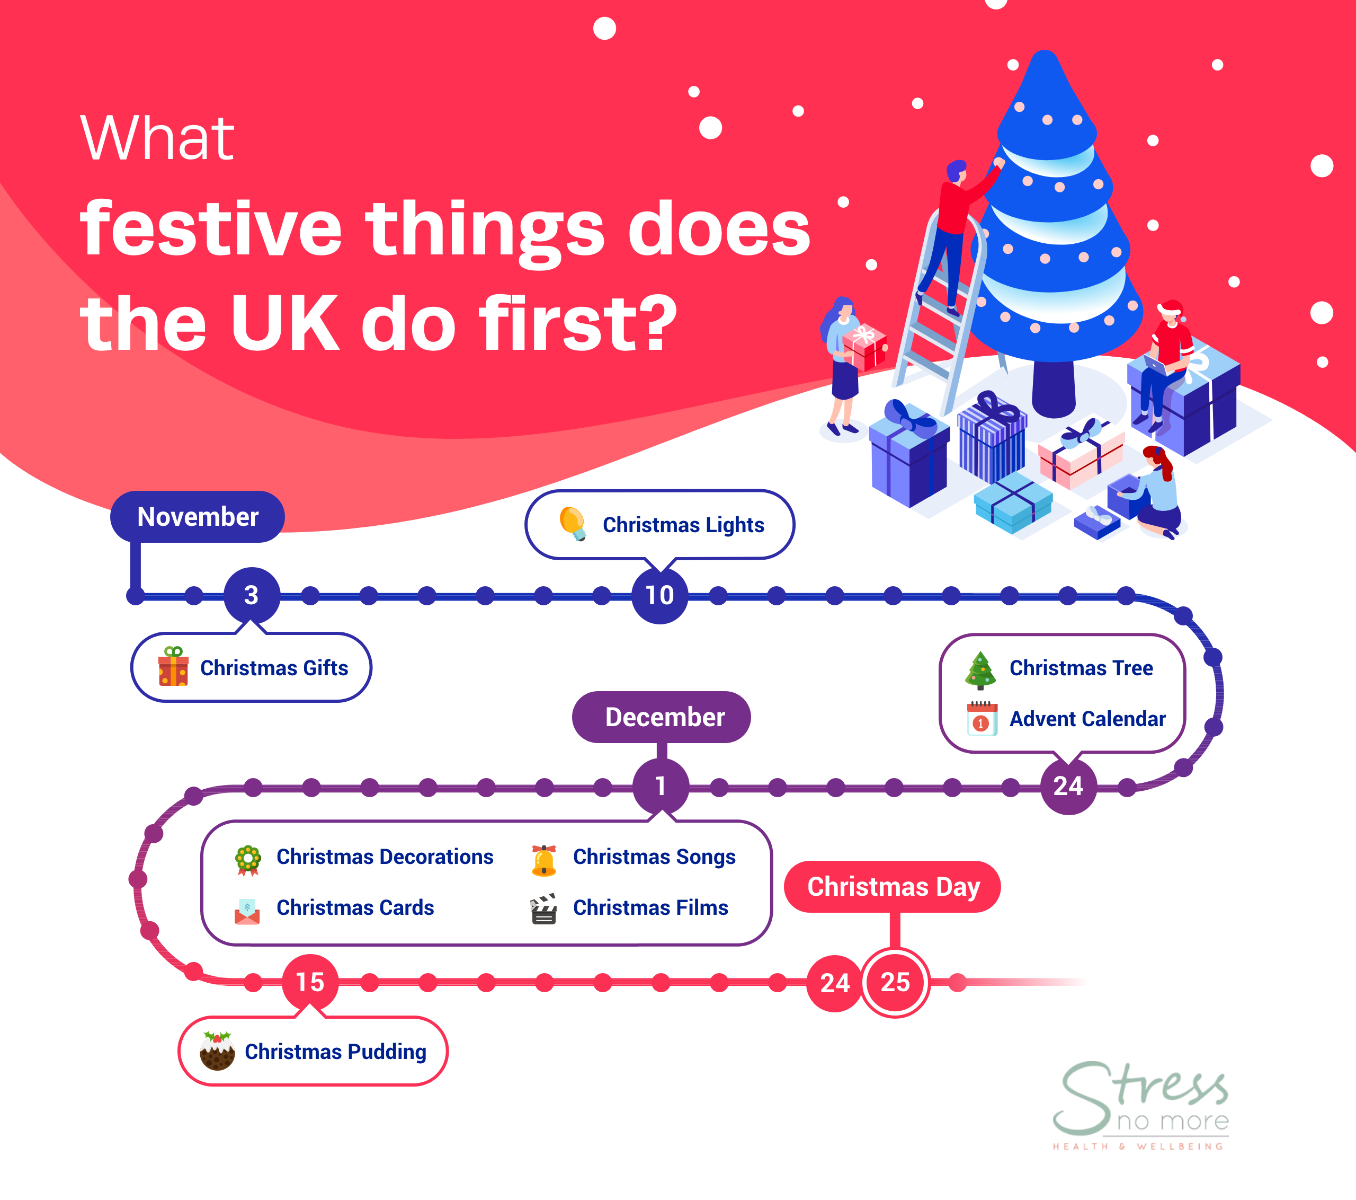 What festive things does the UK do first?